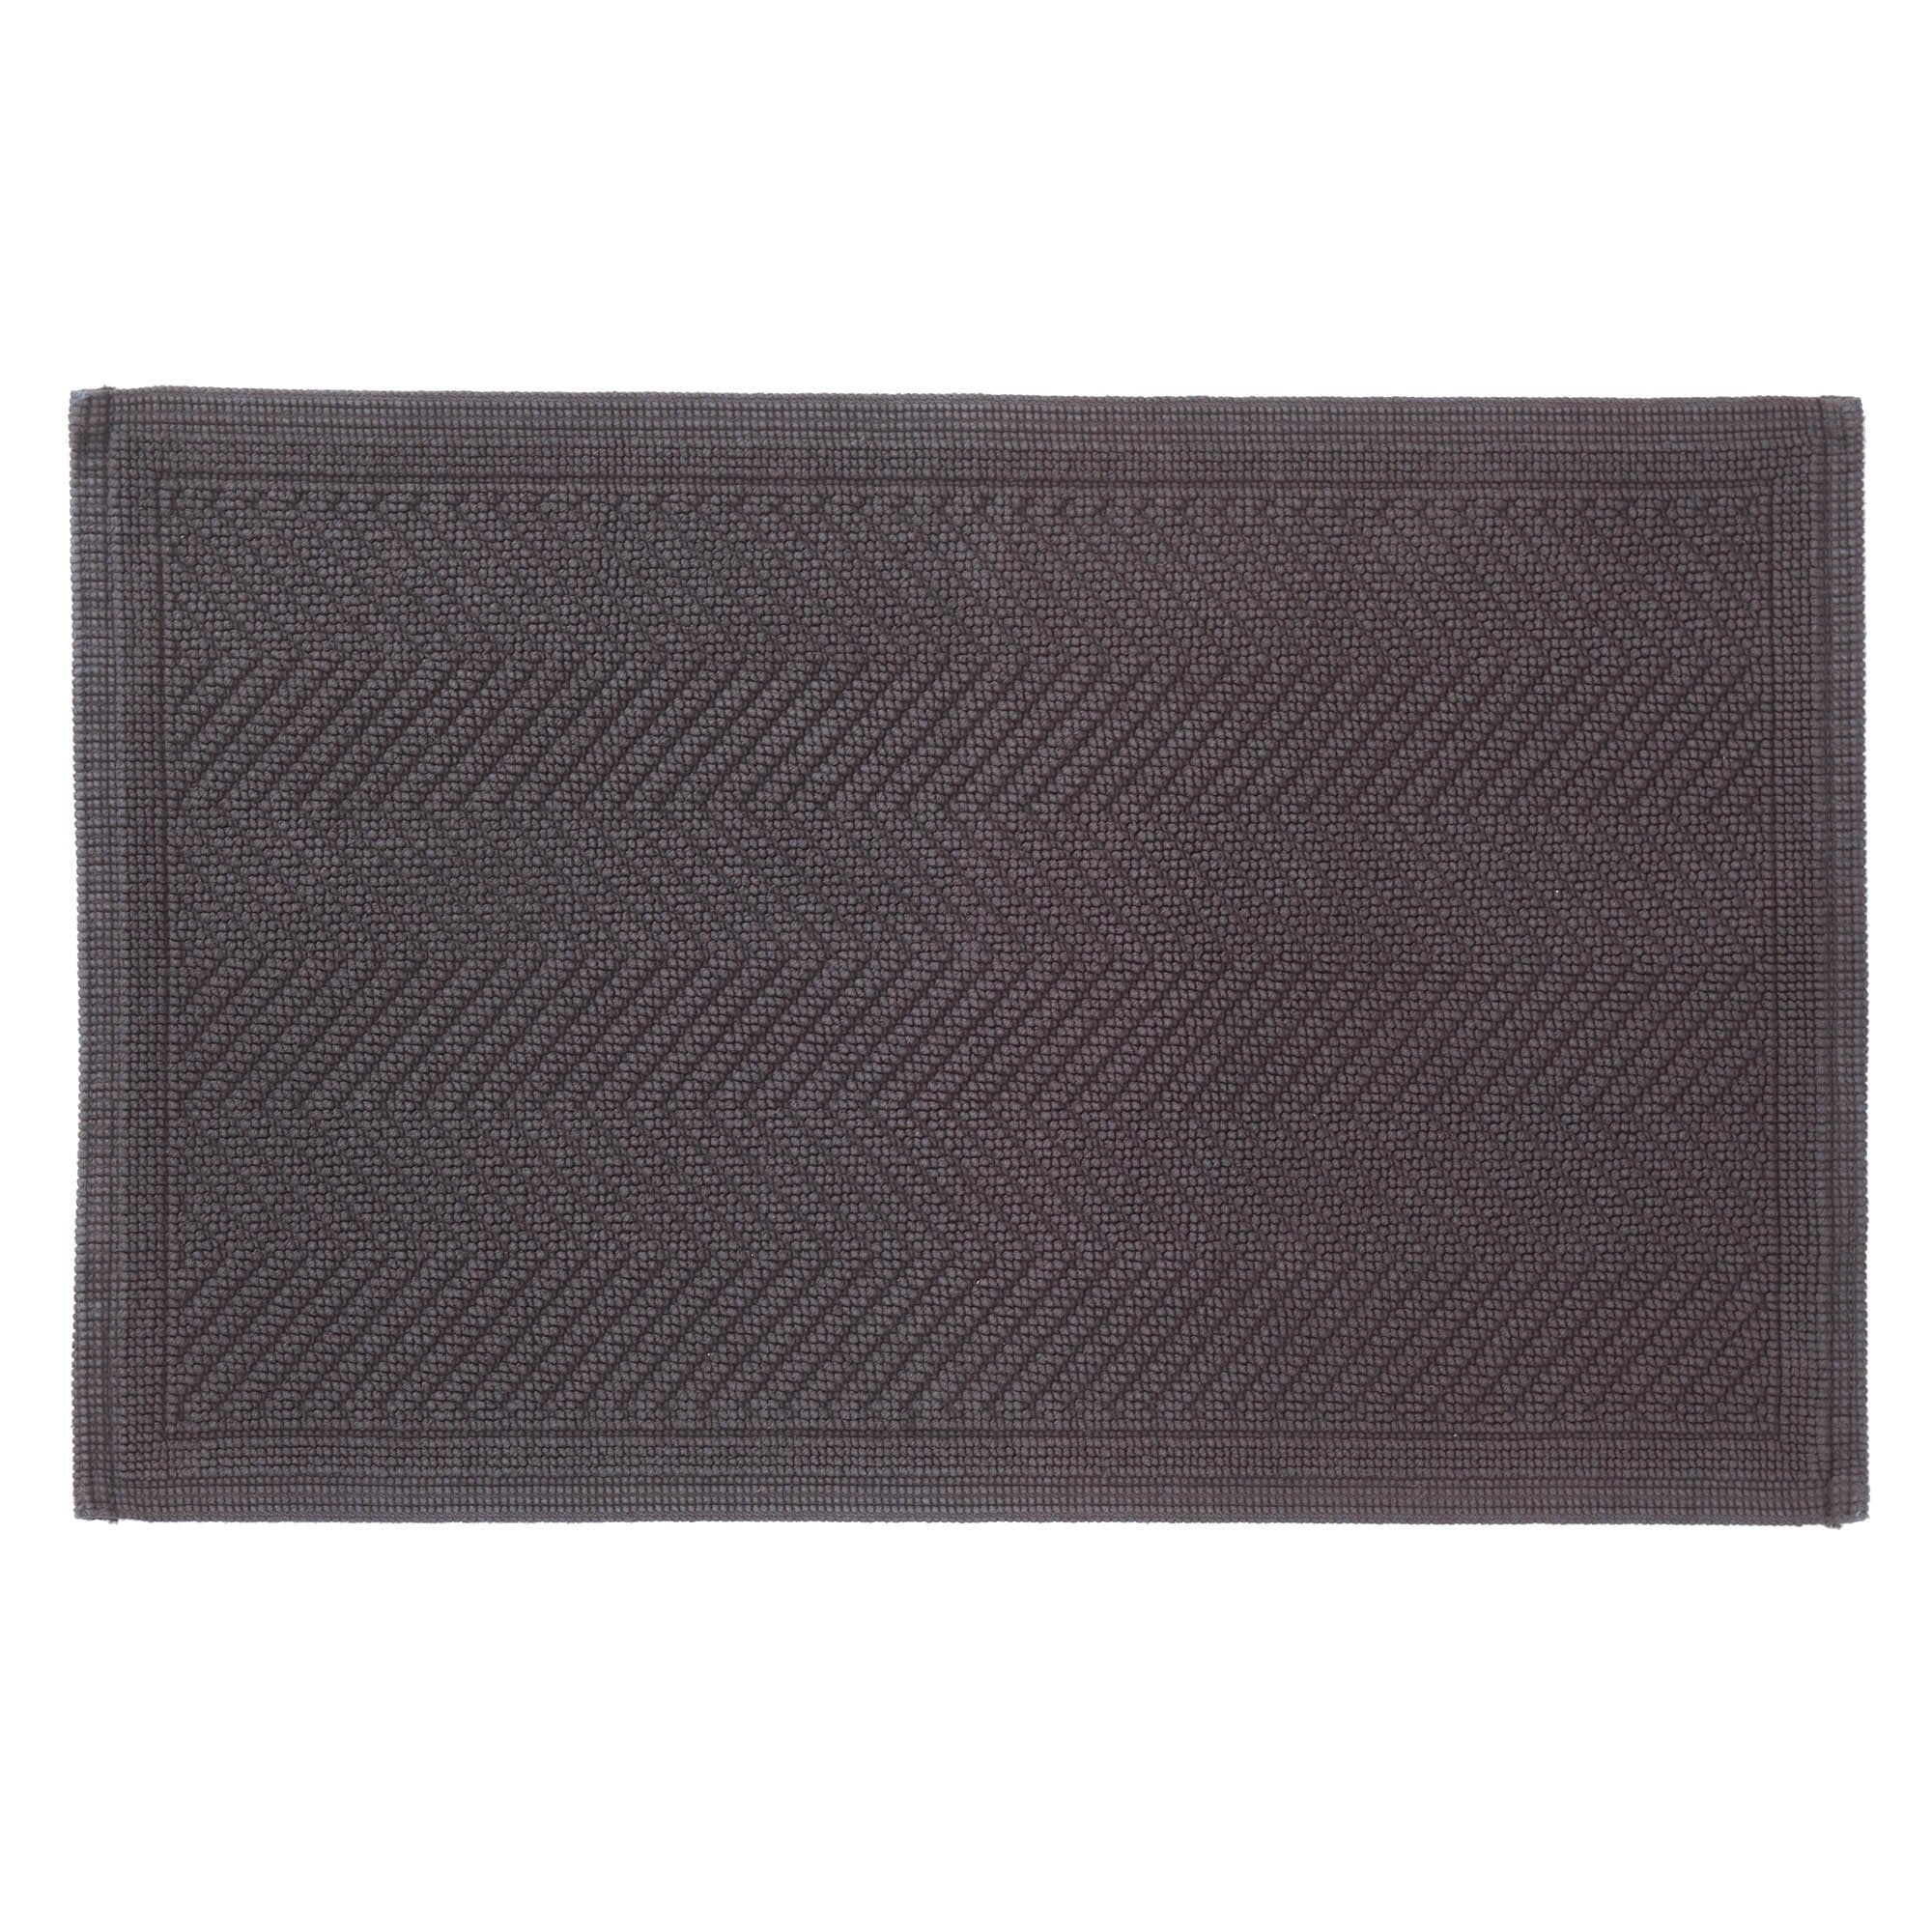 Tajo bath mat, charcoal, 100% cotton